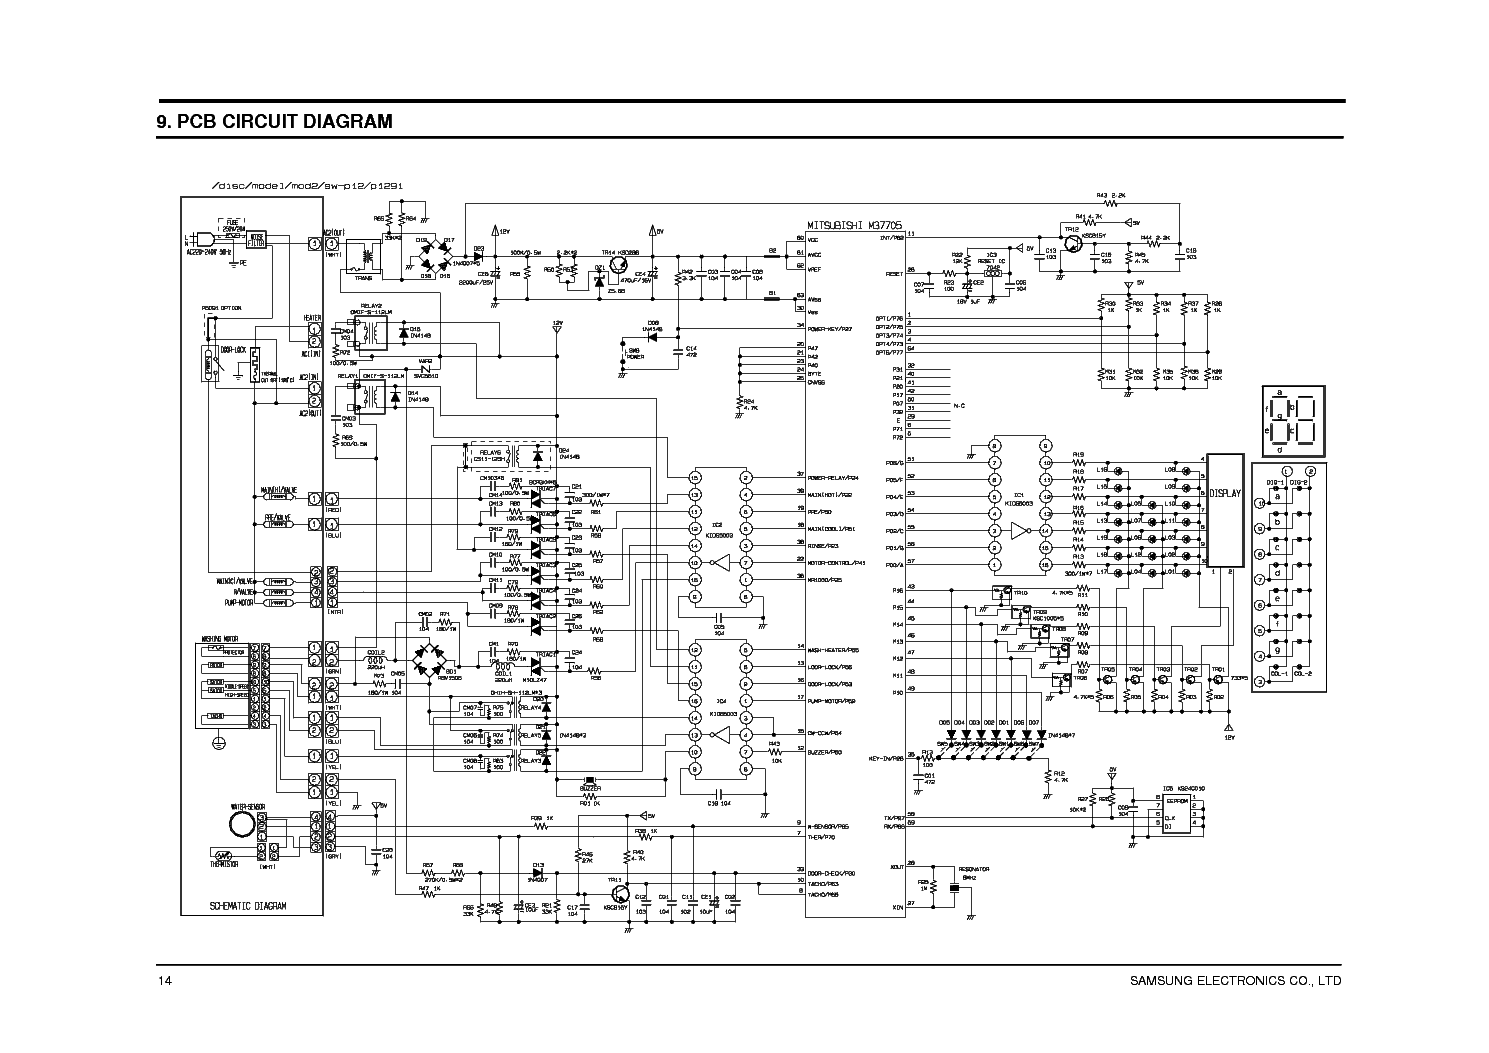 Wiring Diagram For A Ge Ro Airconditioner Model Asw18dls1